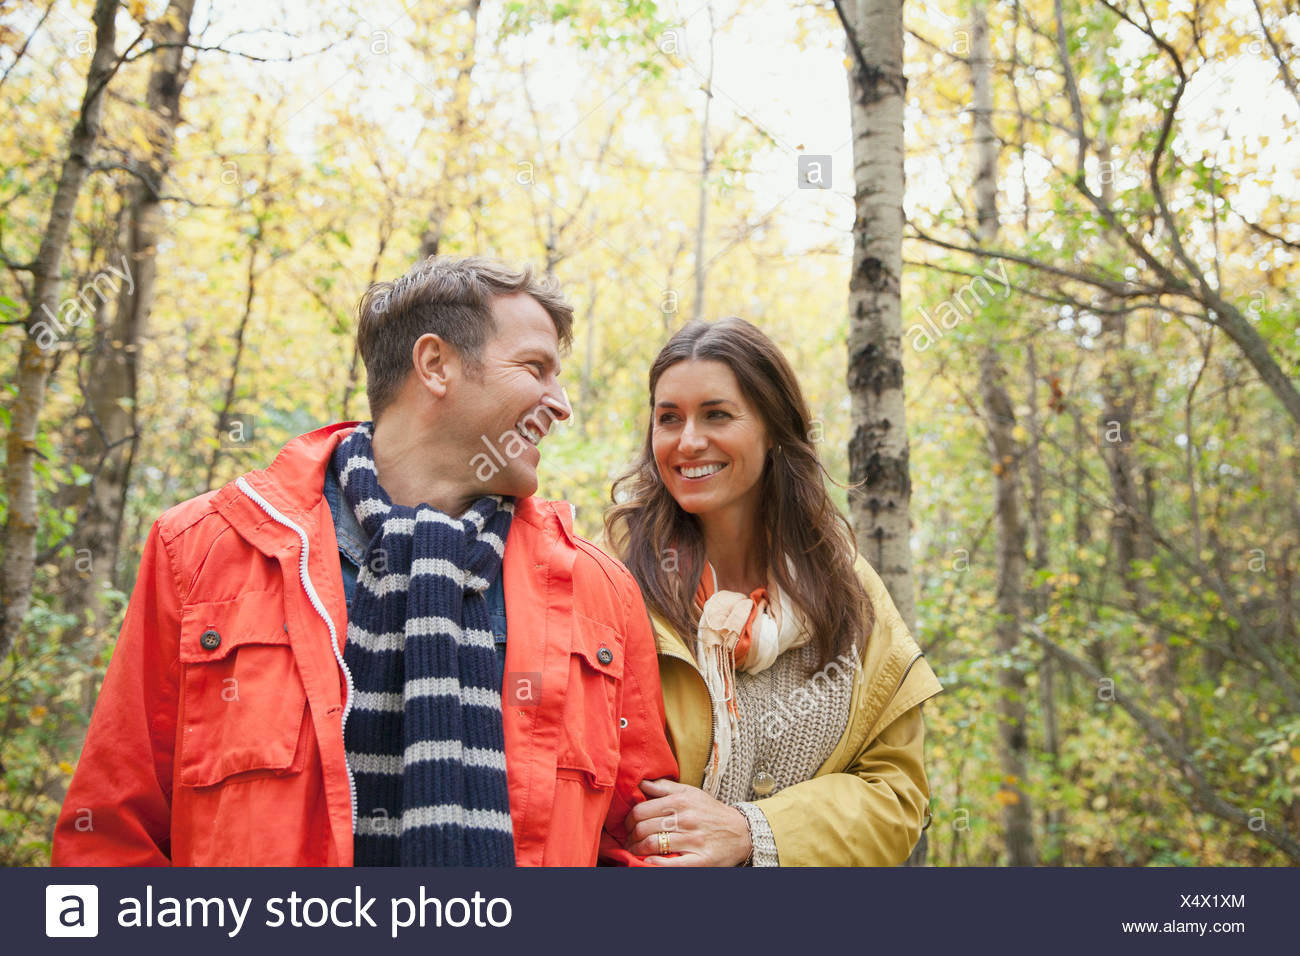 Heureux couple walking in park Photo Stock